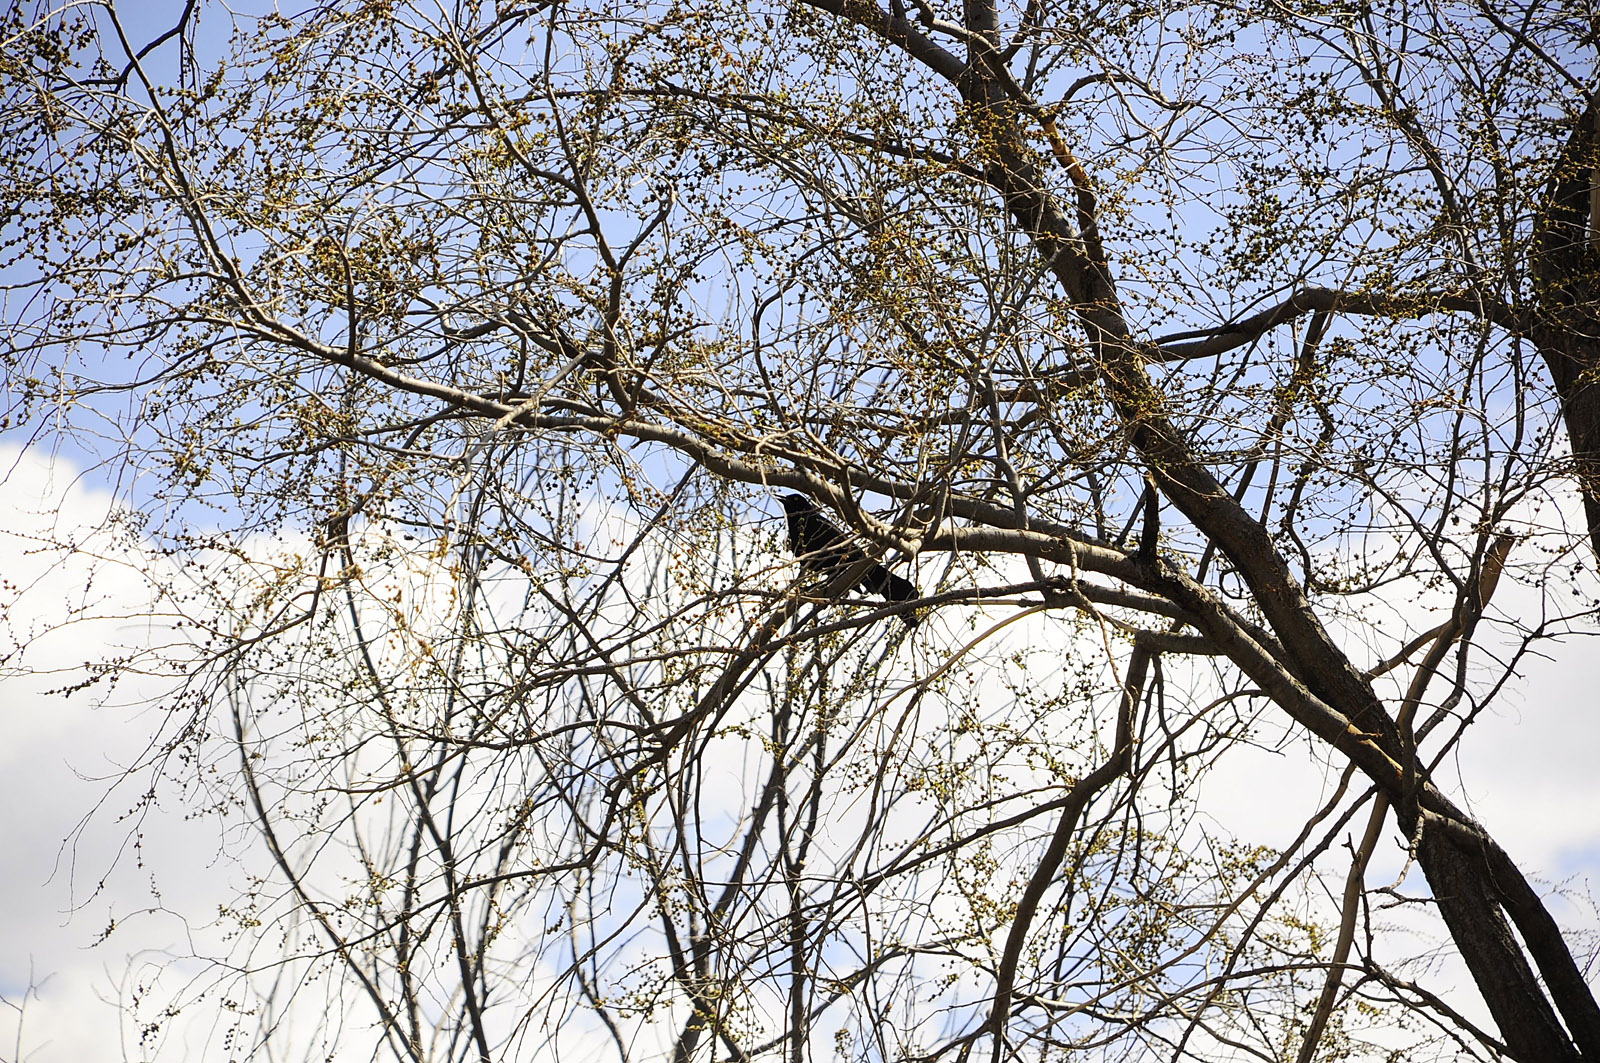 Grackle in a tree.